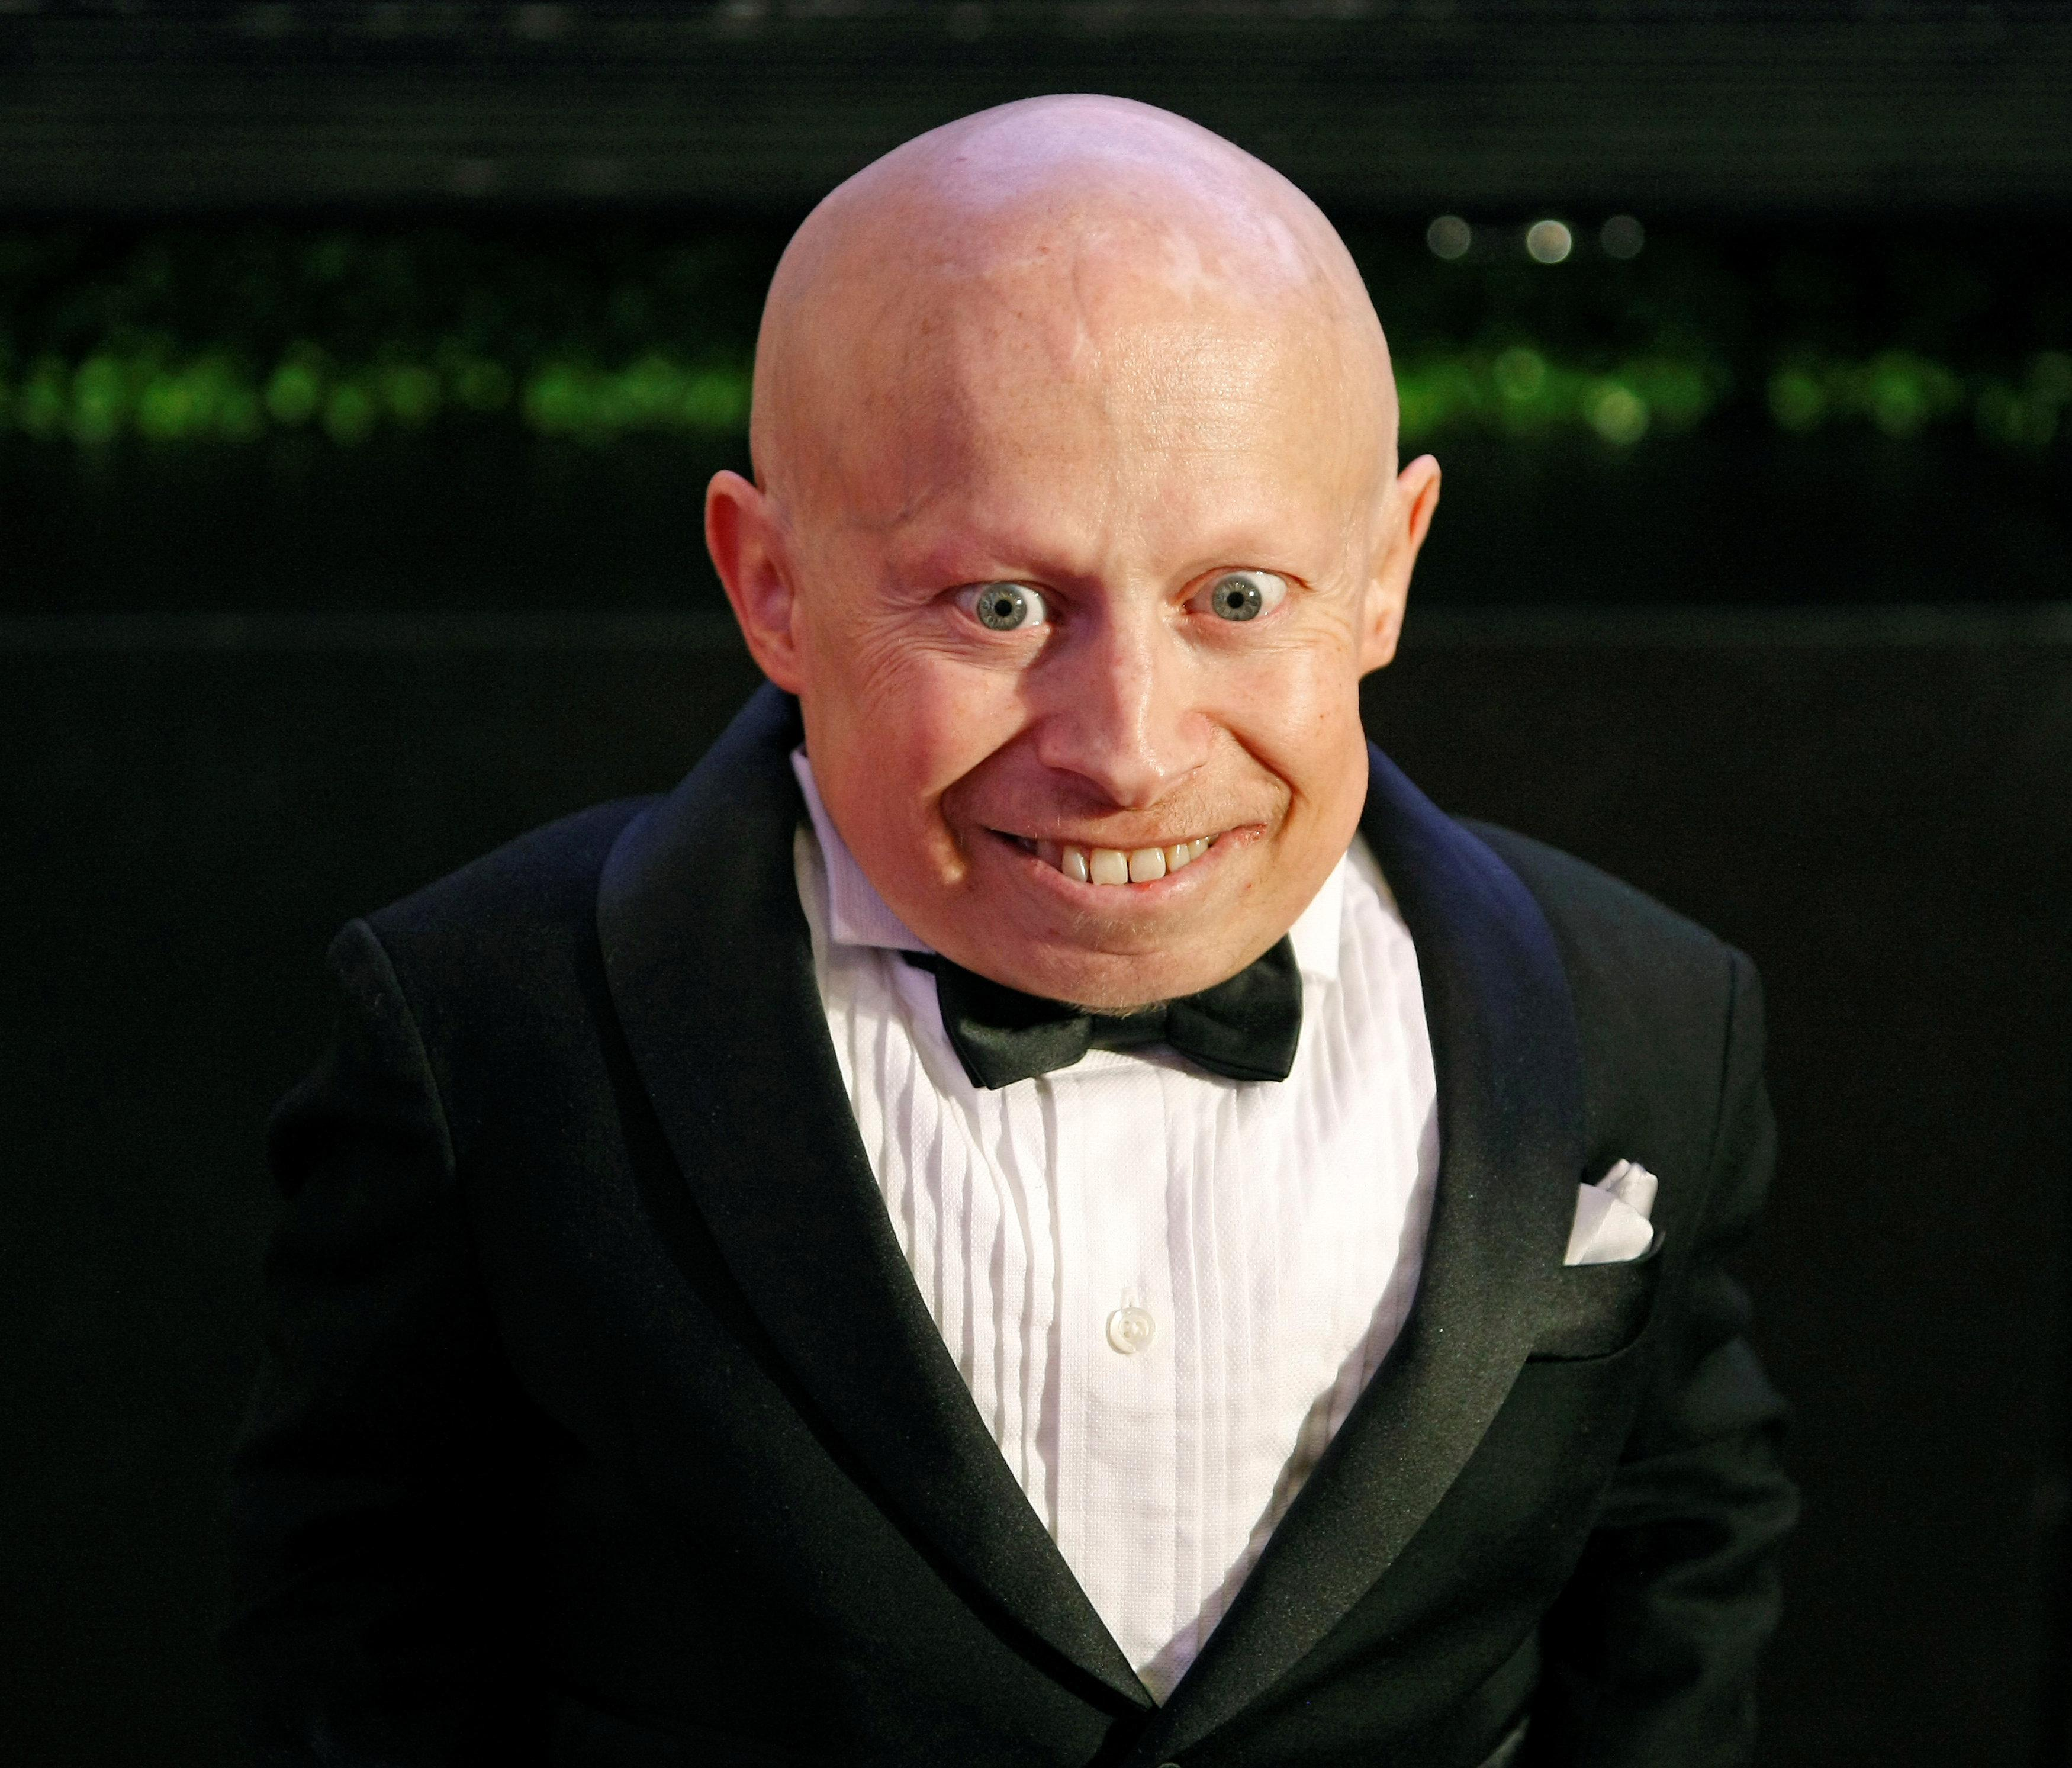 Actor Verne Troyer arrives on the red carpet at the Muhammad Ali Celebrity Fight Night Awards XIX in Phoenix, Arizona March 23, 2013. Ralph Freso